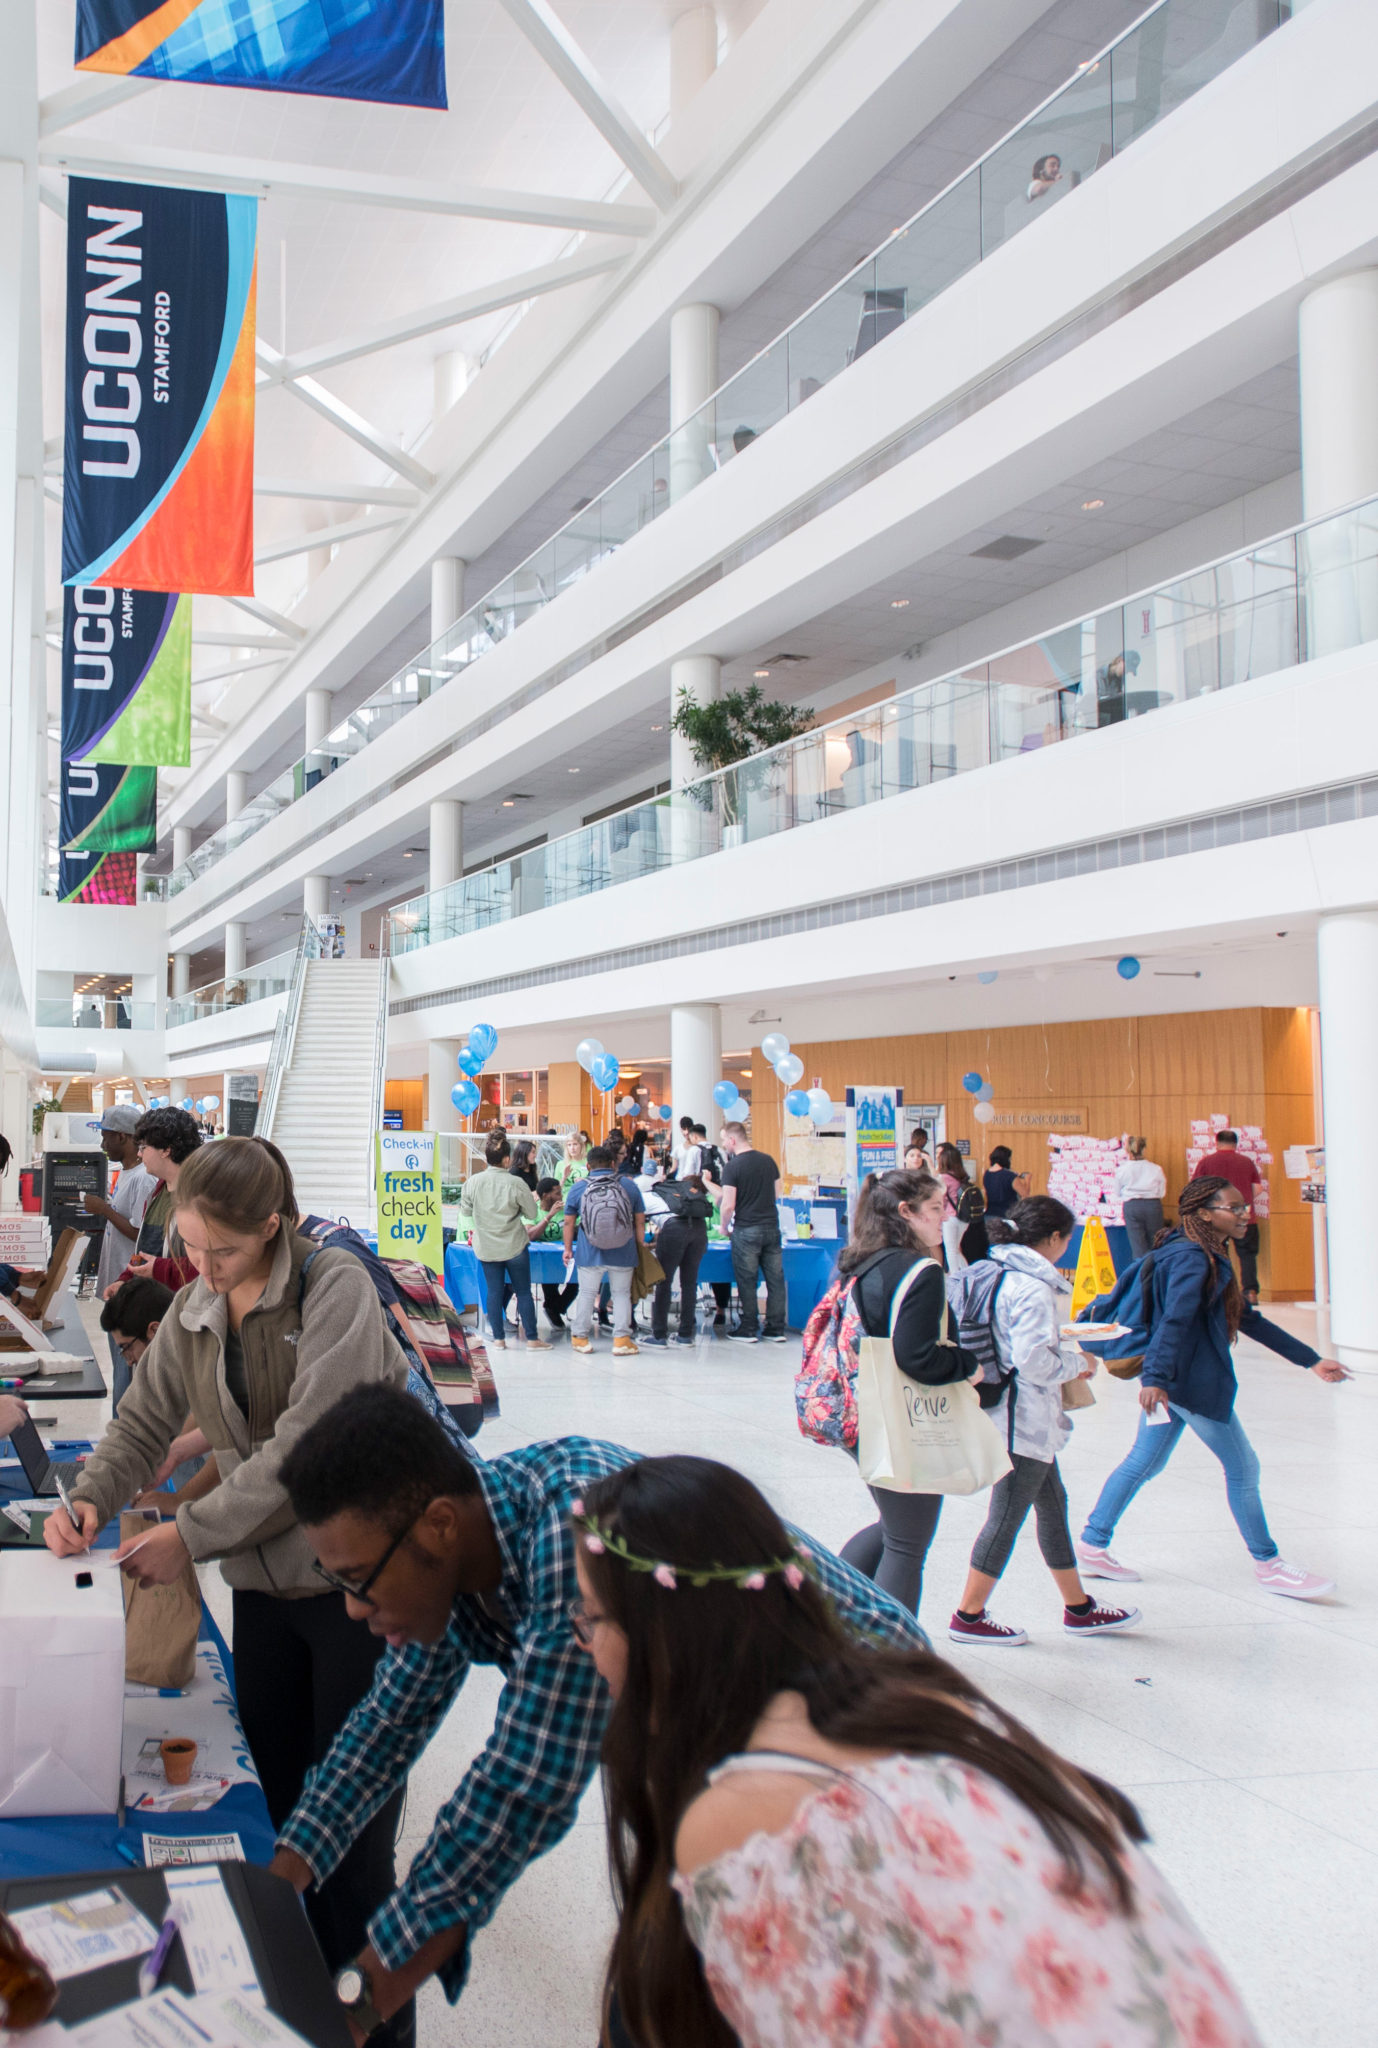 Students participate in Fresh Check Day in the concourse (atrium) at Uconn Stamford